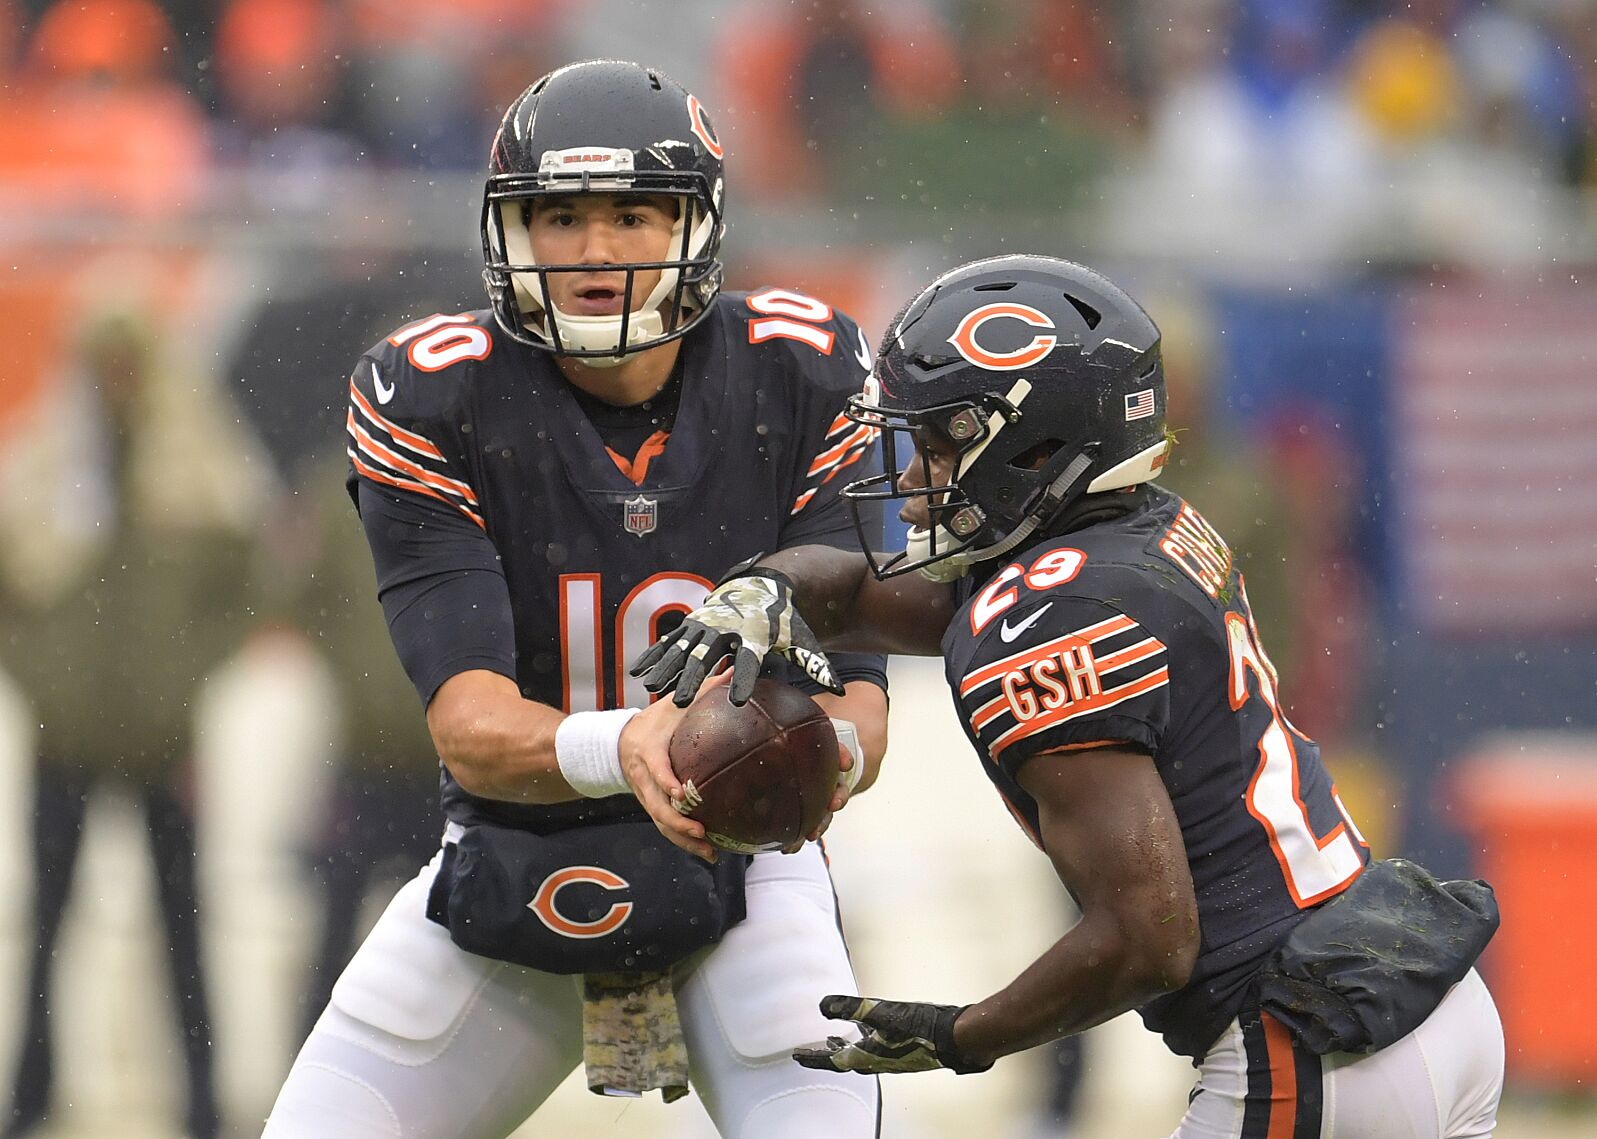 bccfbfaf0 CHICAGO, IL – NOVEMBER 12: Quarterback Mitchell Trubisky #10 of the Chicago  Bears hands the football off to Tarik Cohen #29 in the second quarter  against ...